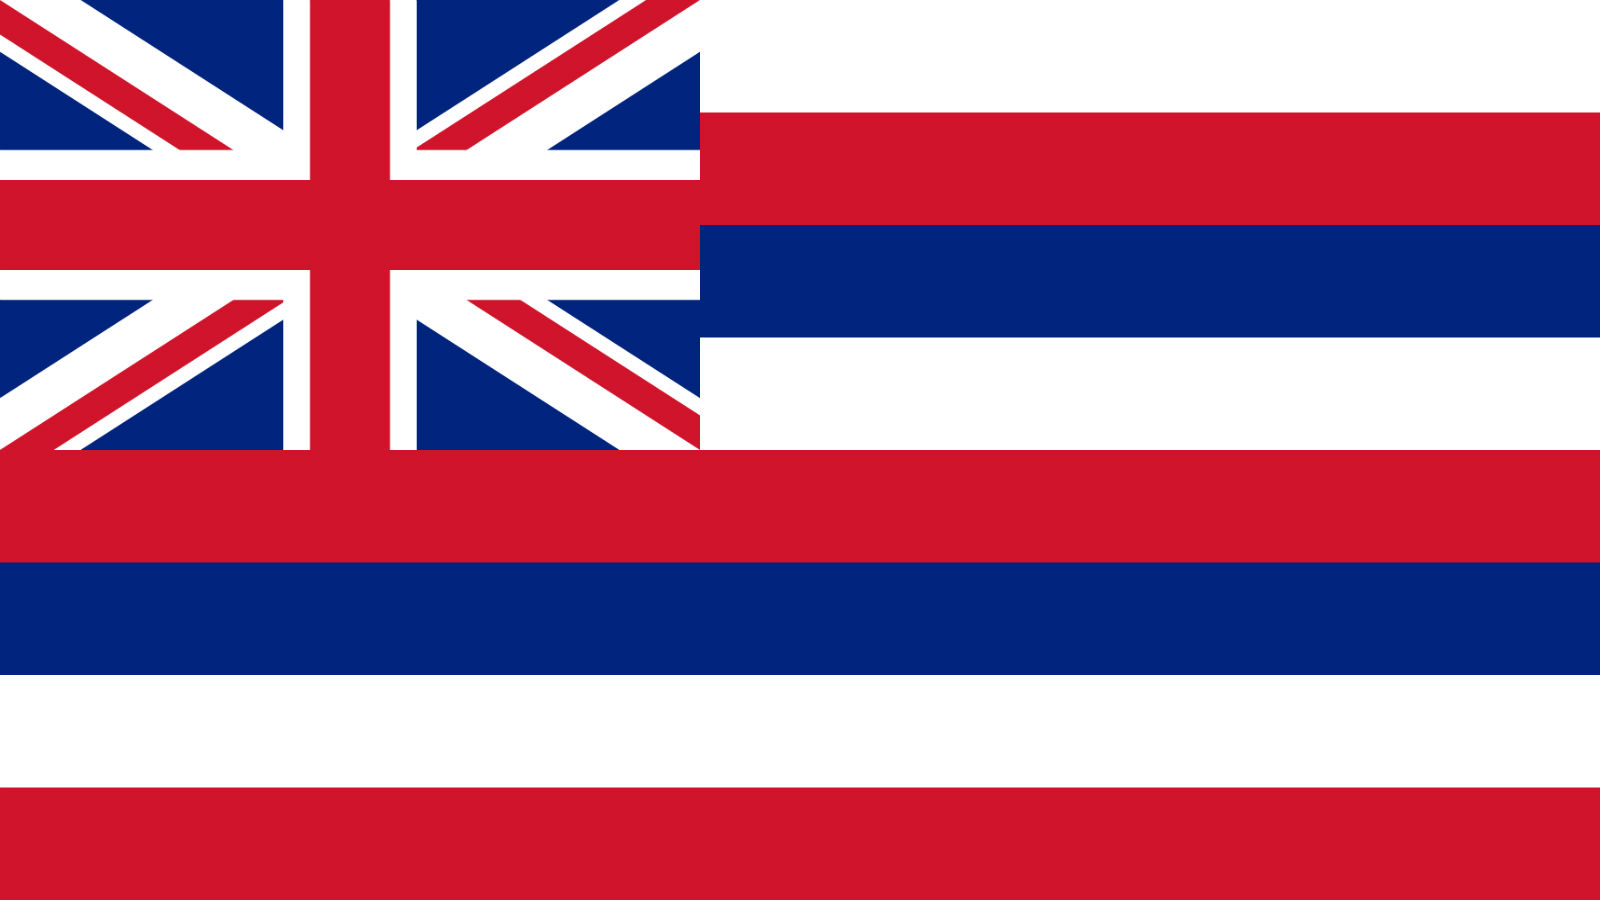 Hawaii Bill Allowing Transgender People To Amend Birth Certificates